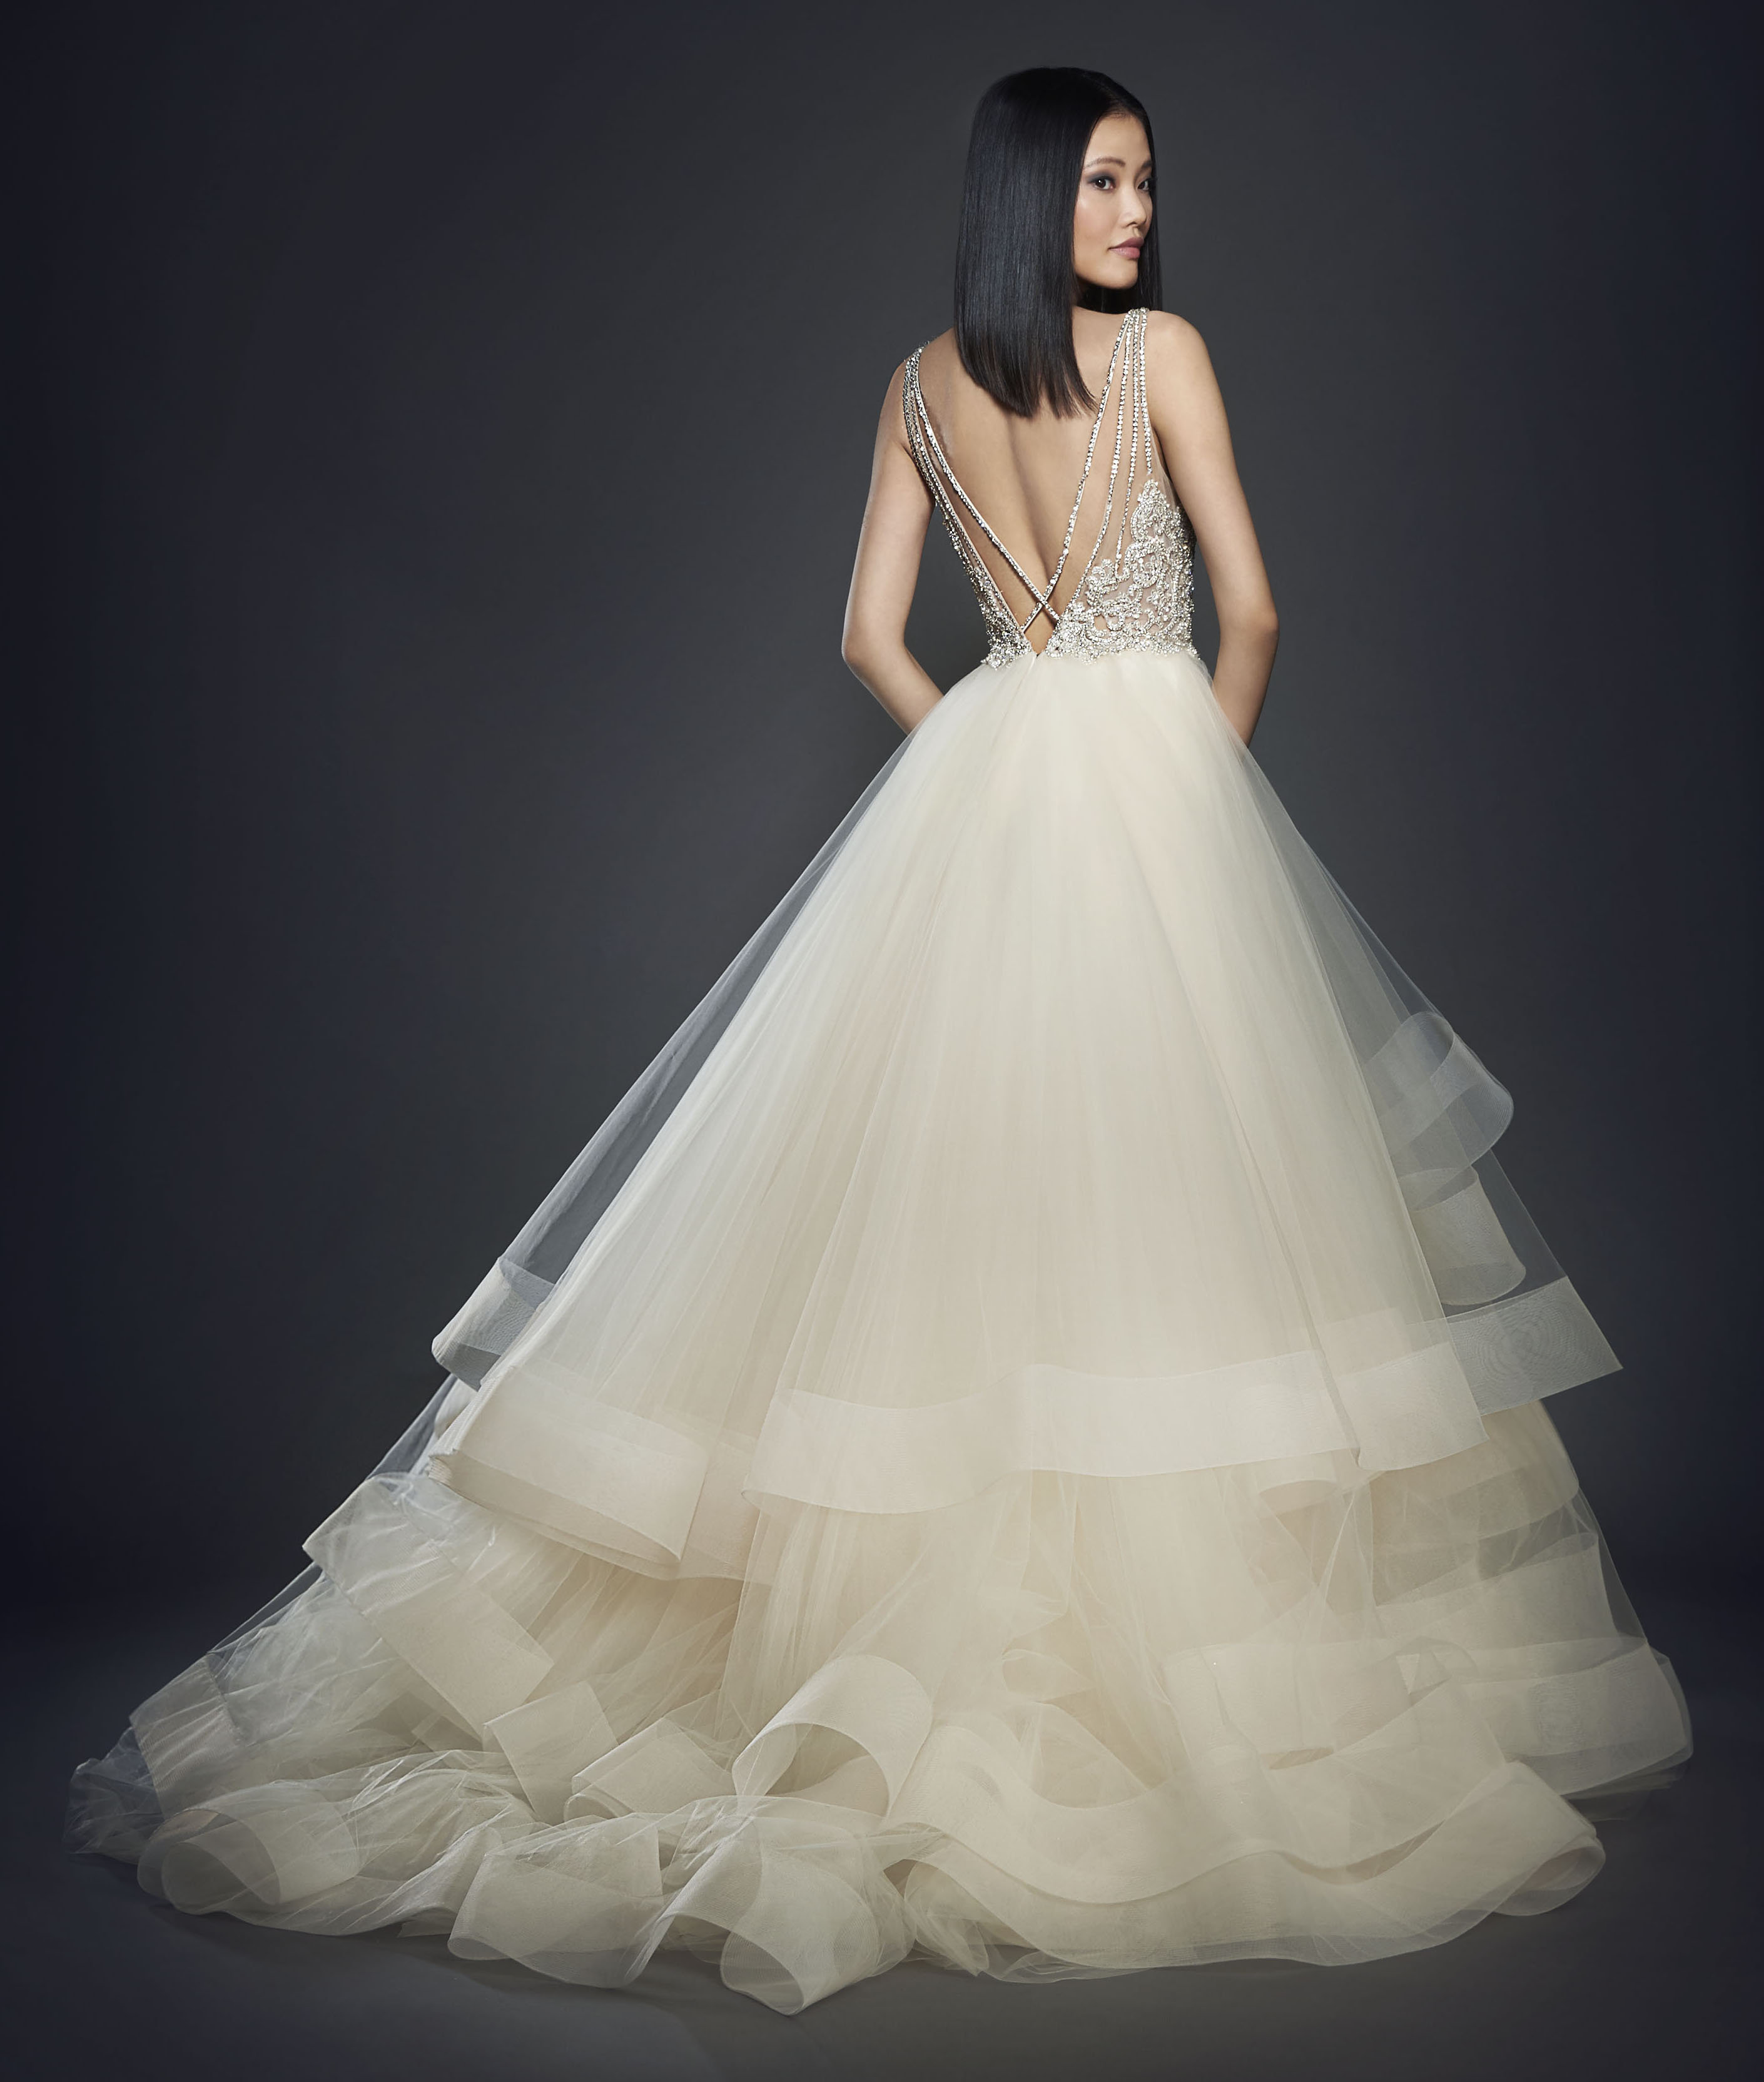 Bridal Gowns and Wedding Dresses by JLM Couture - Style 3708